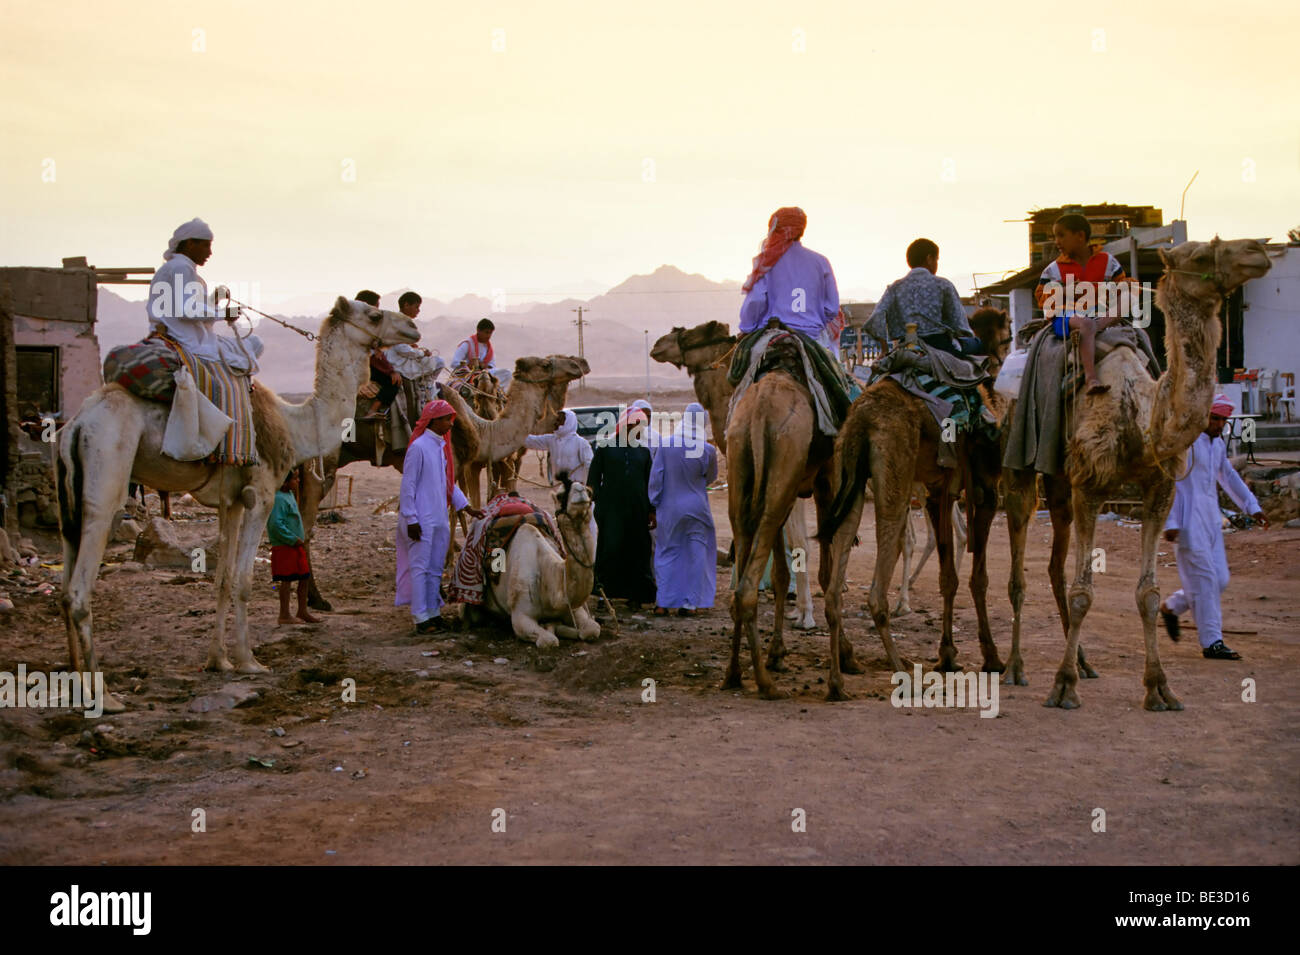 Camel Riders, Bedouins, Egyptians, camels, in the evening, Dahab, Sinai, Egypt, Africa - Stock Image